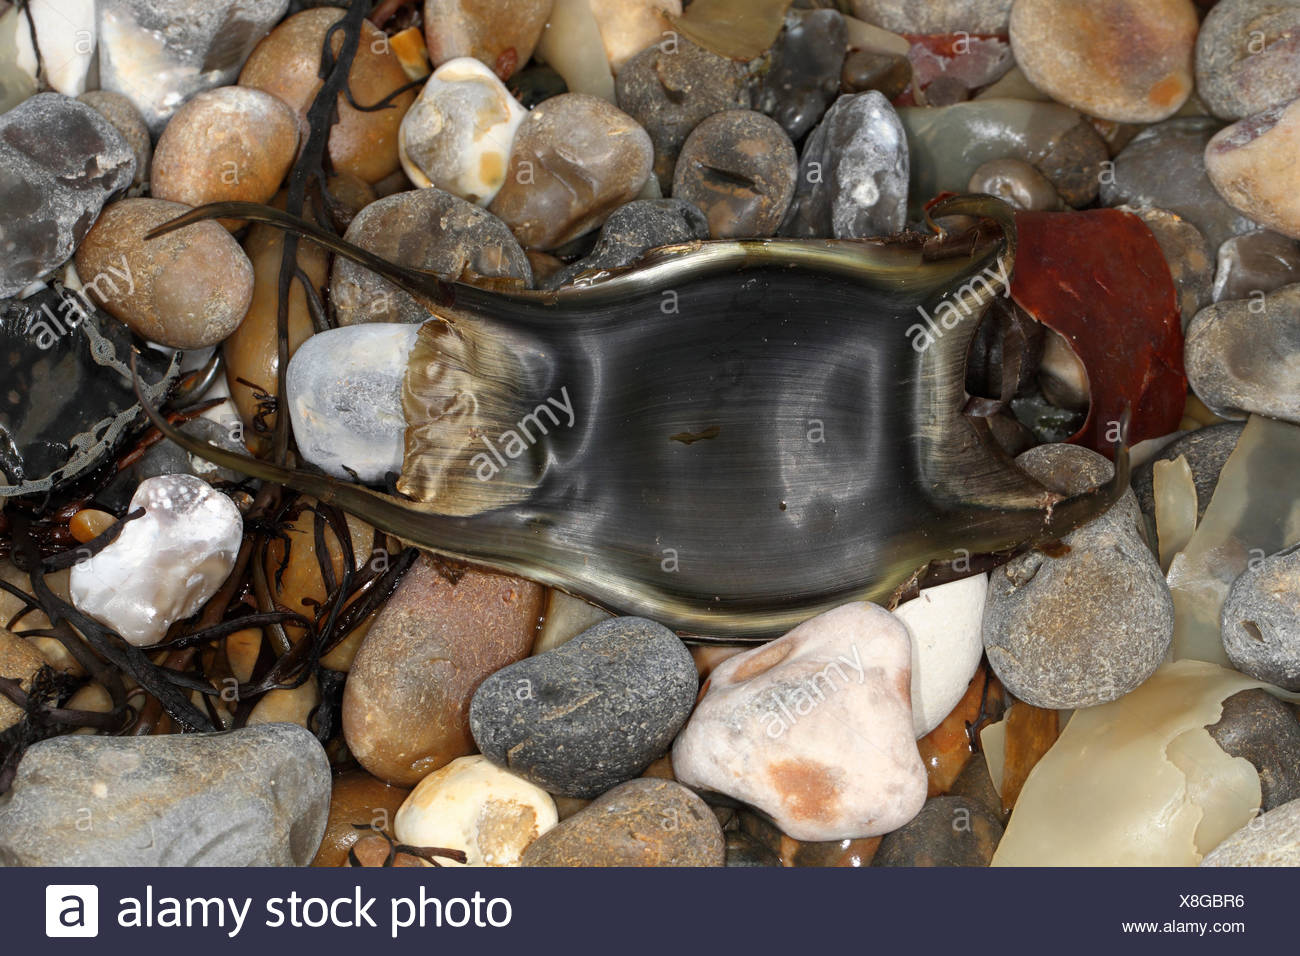 Blonde Ray - Raja brachyura - egg case - Stock Image